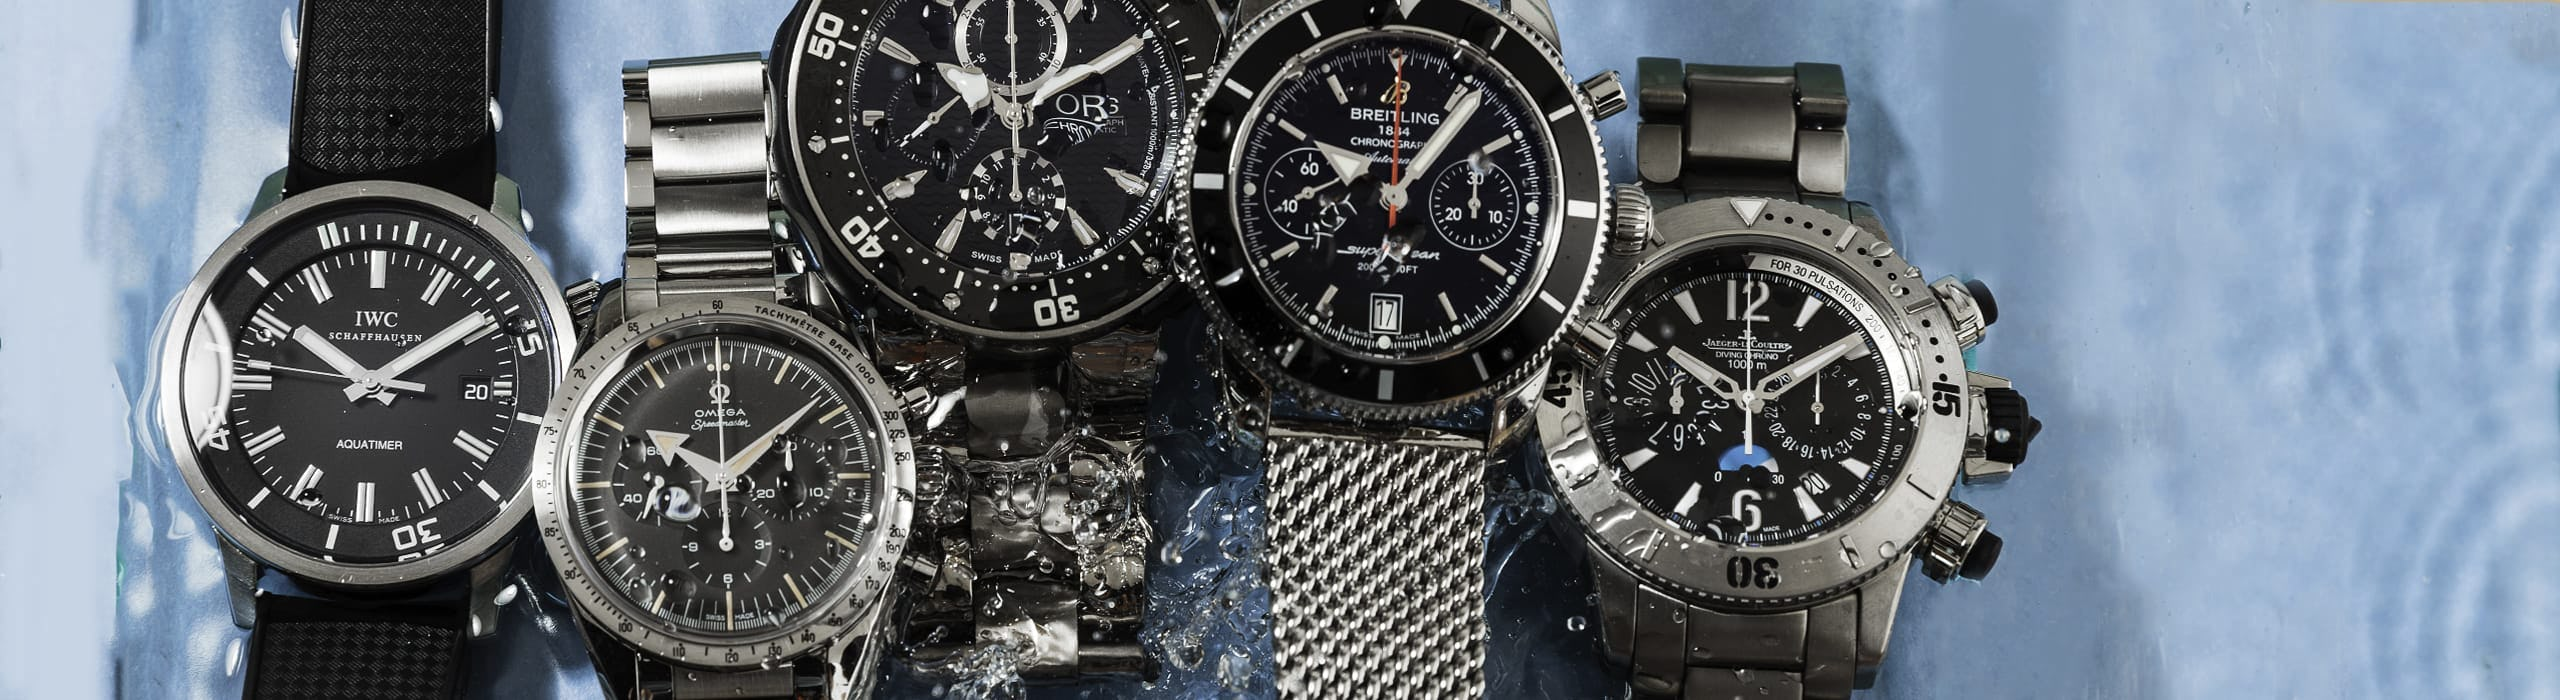 Top 10 Watches For Summer